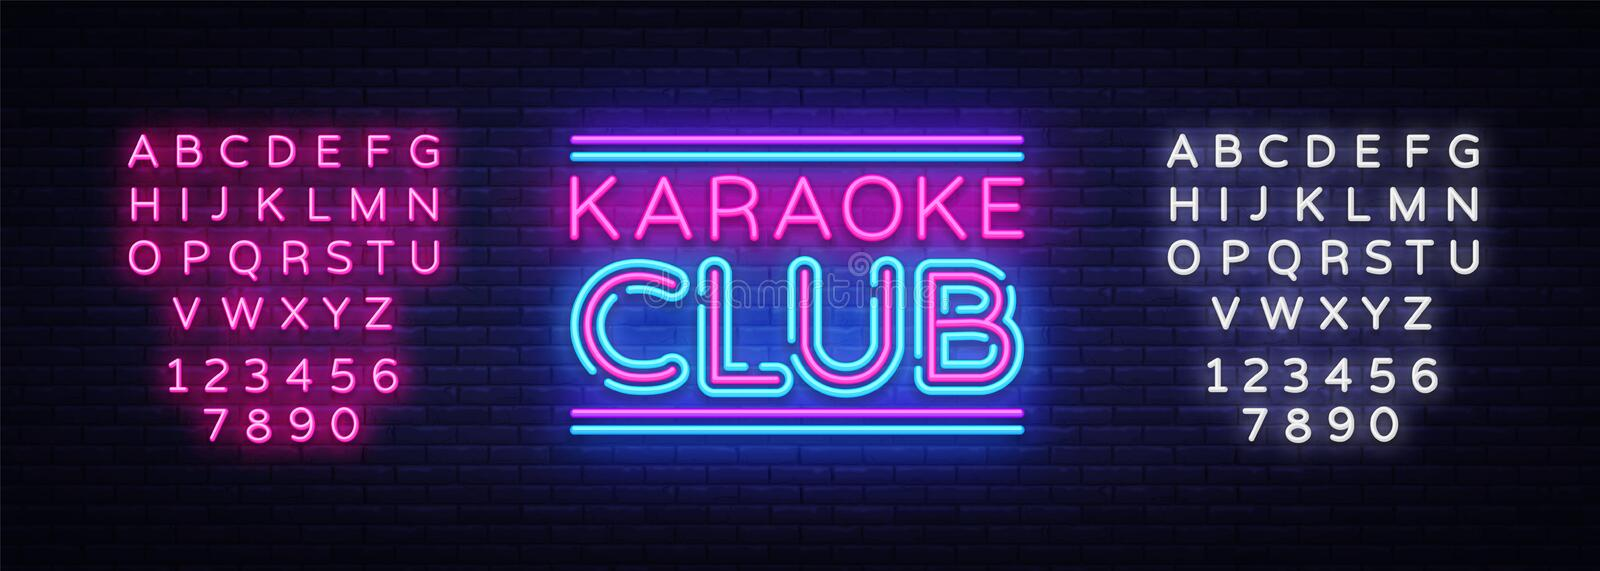 Karaoke Club neon sign vector. Karaoke design template neon sign, light banner, neon signboard, nightly bright. Advertising, light inscription. Vector royalty free illustration